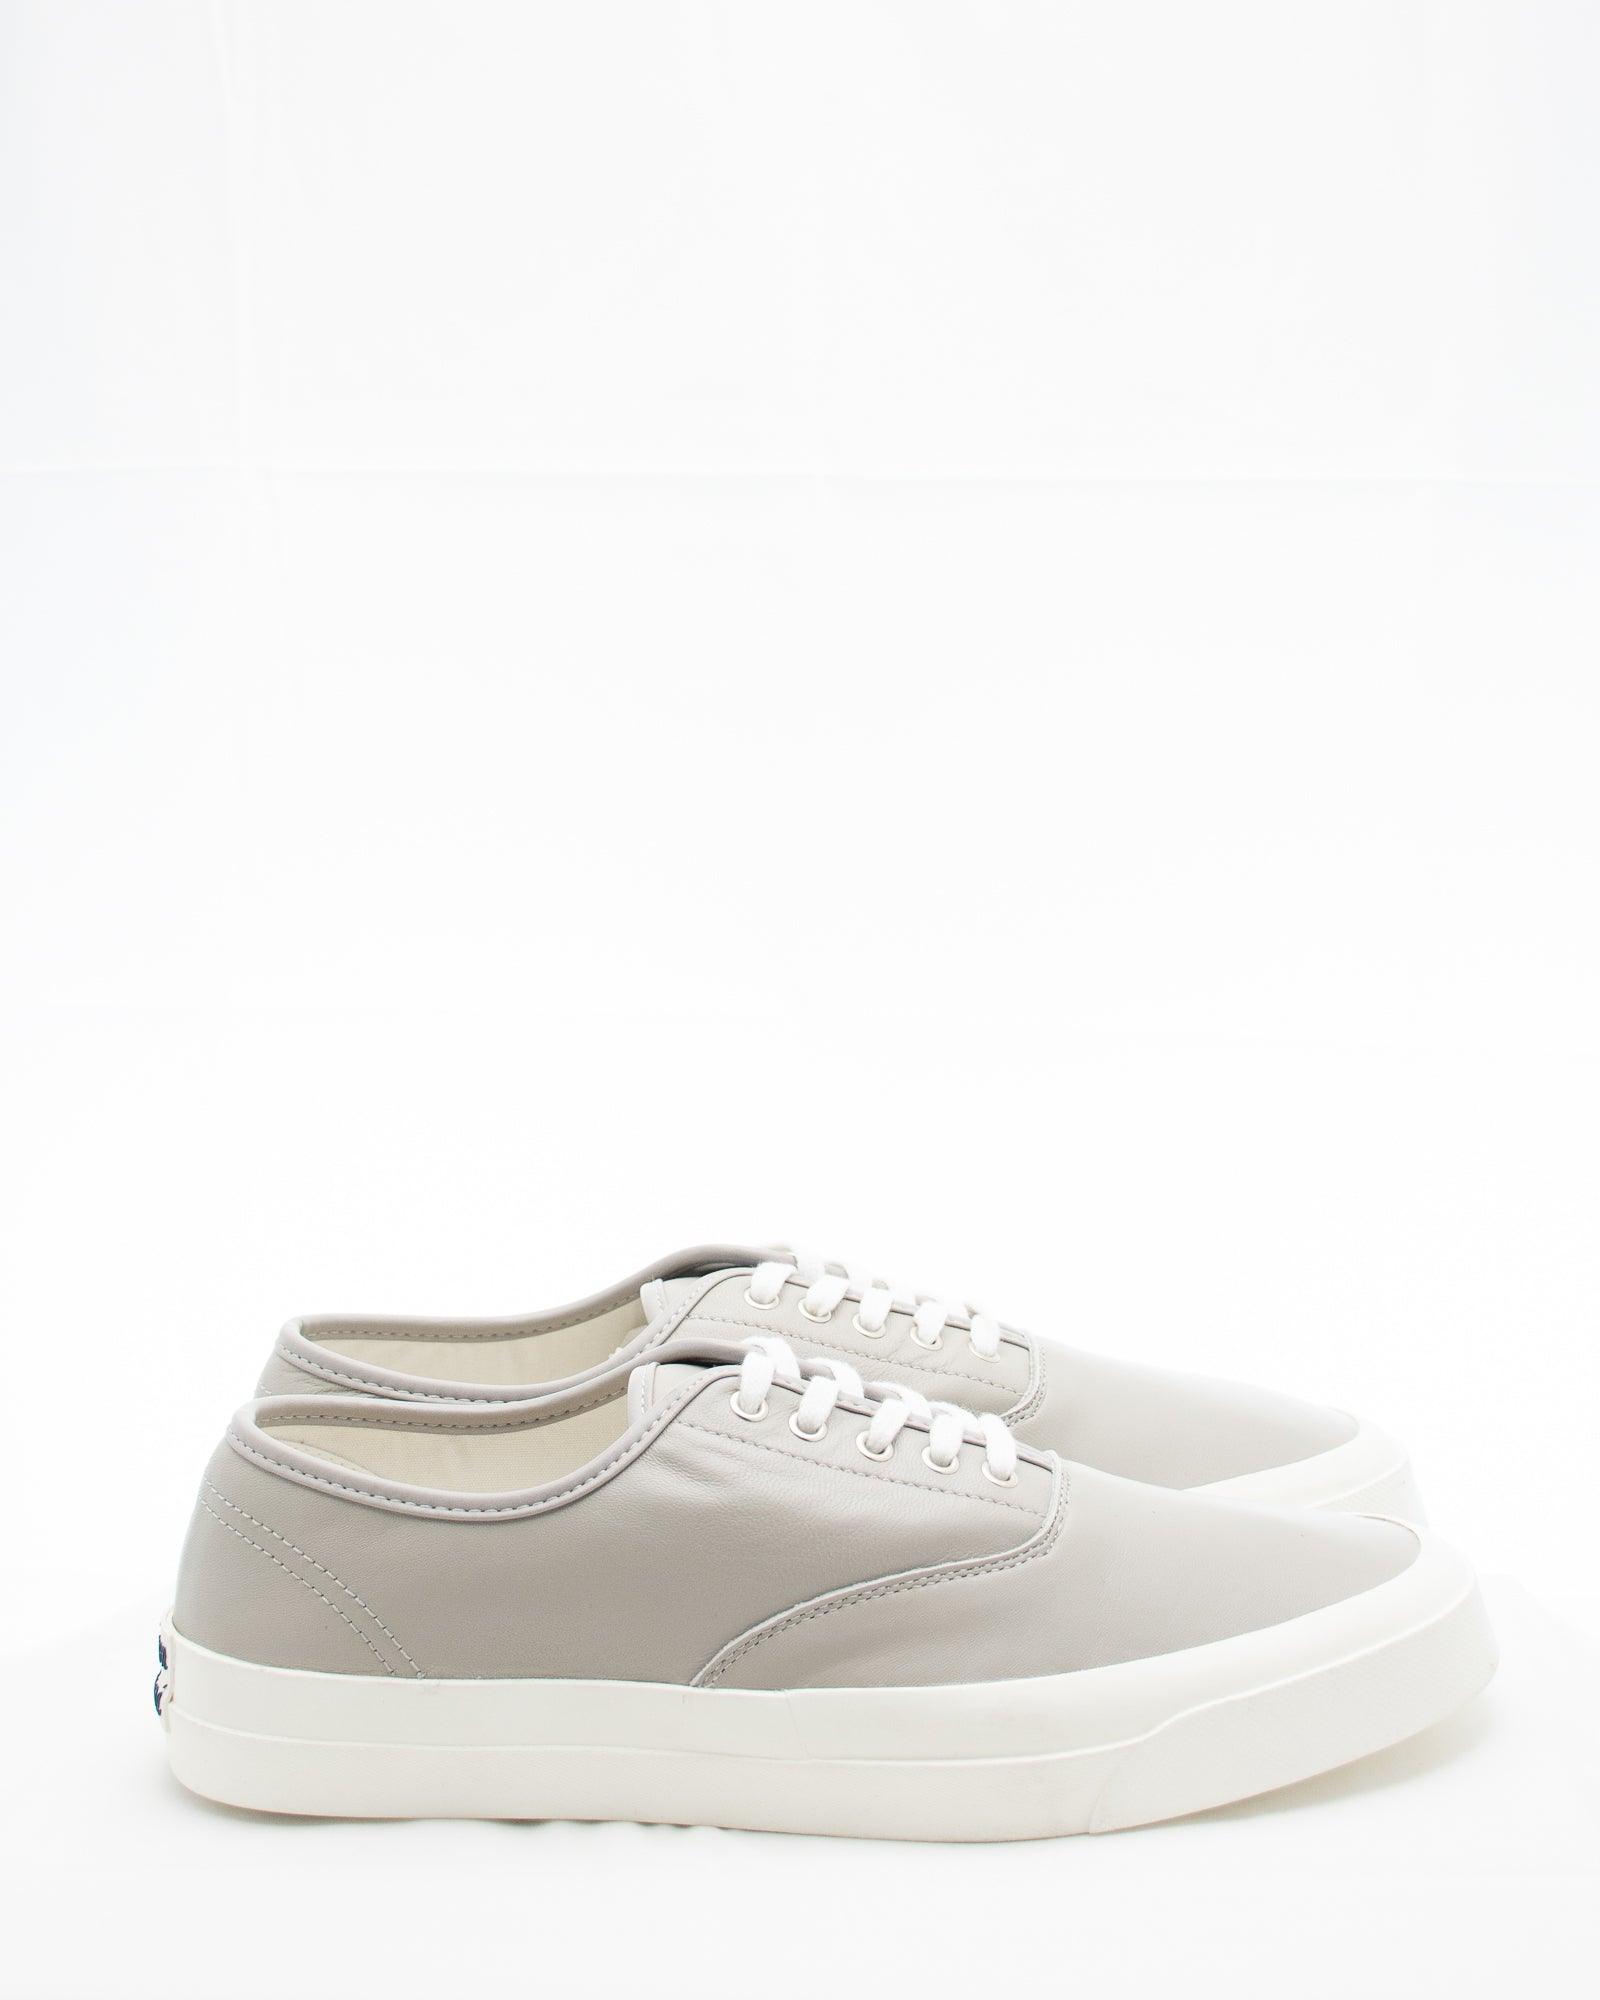 KITSUNE Leather Lace Sneaker